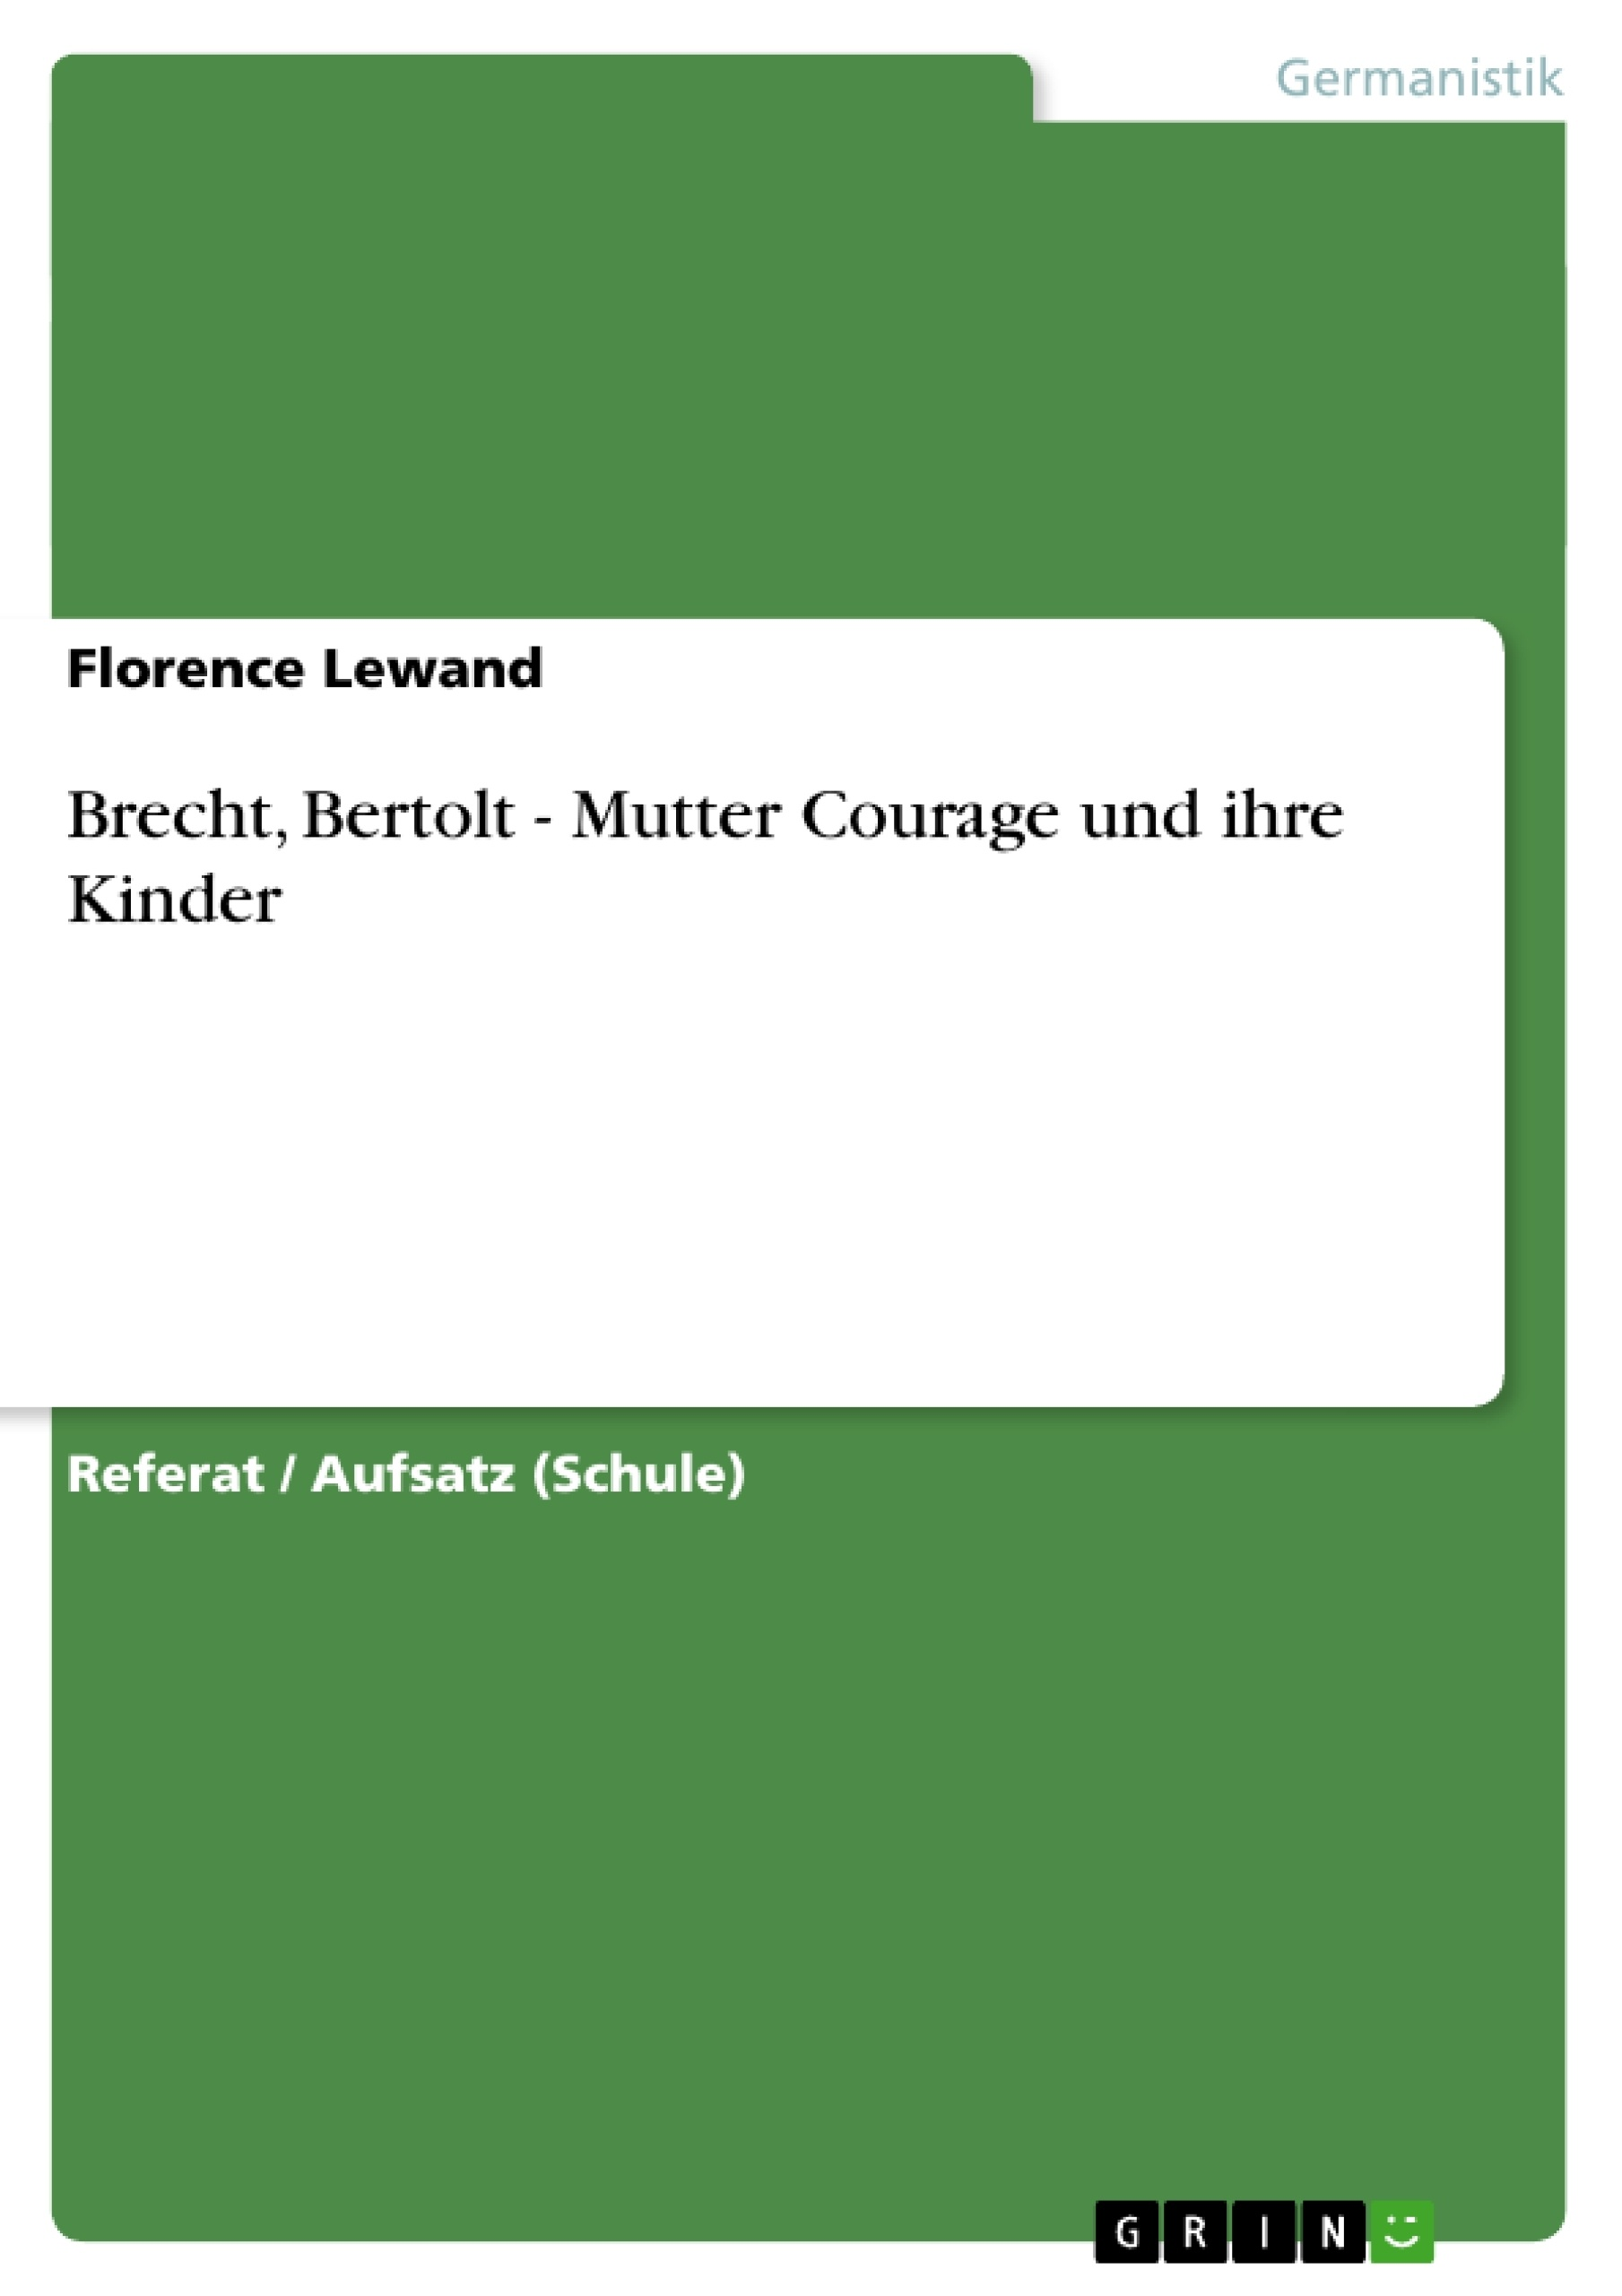 Titel: Brecht, Bertolt - Mutter Courage und ihre Kinder